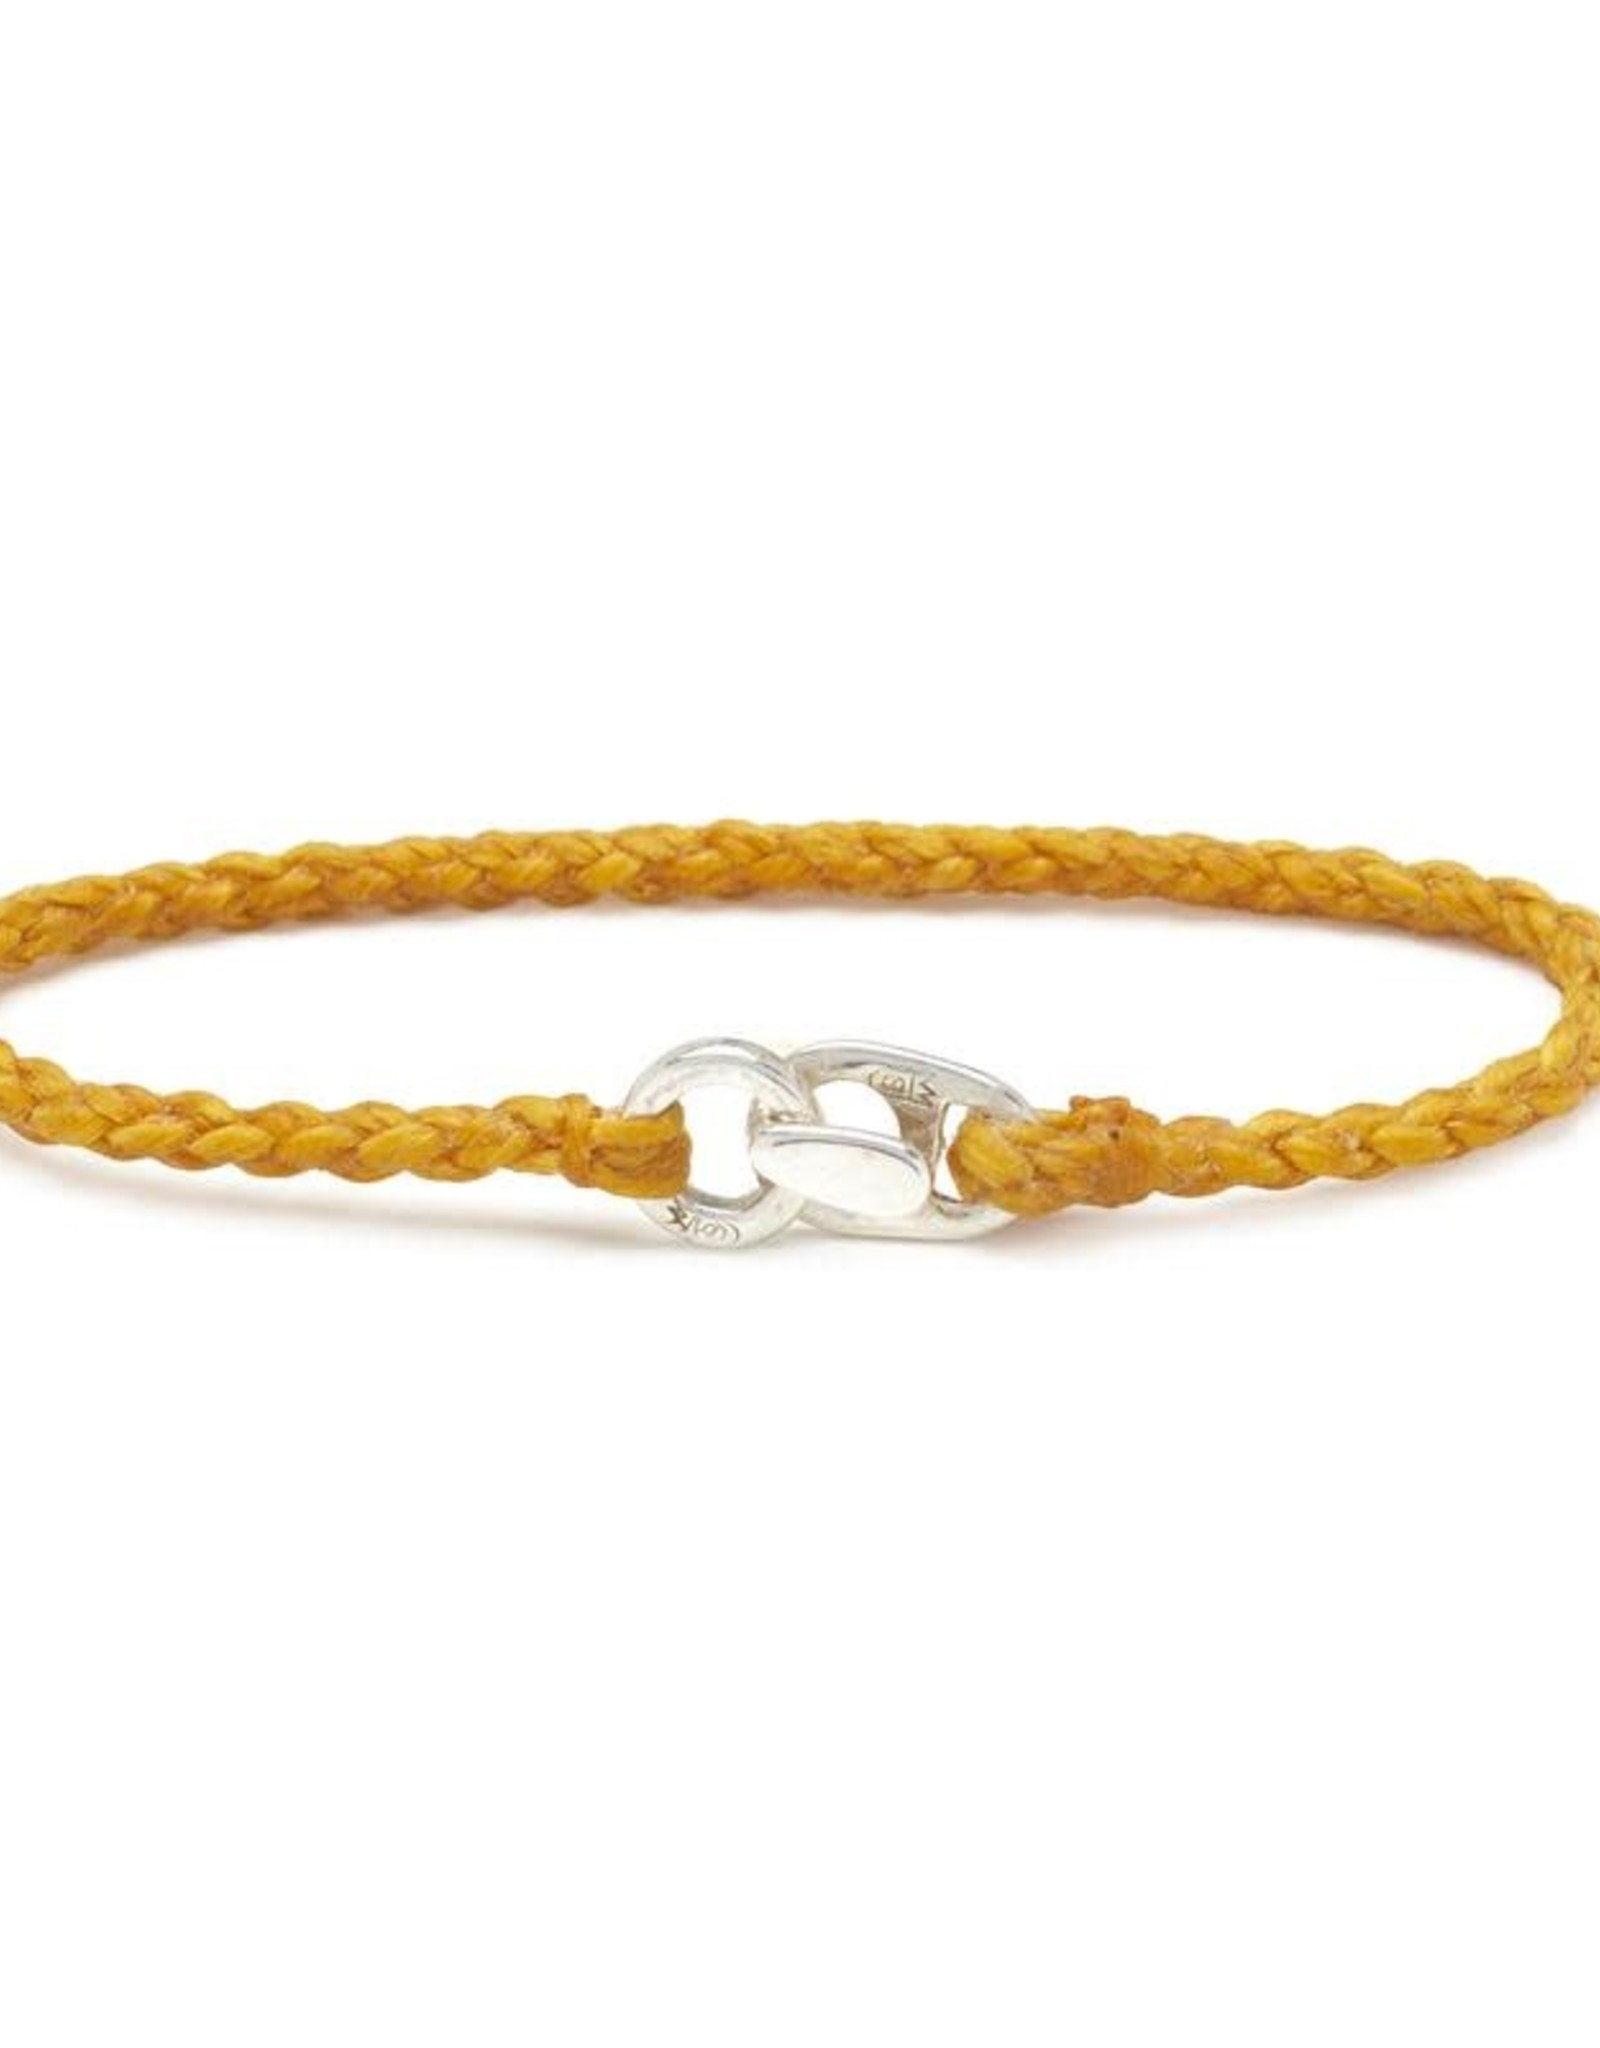 Scosha Single Wrap Silver Bracelet - Mimosa